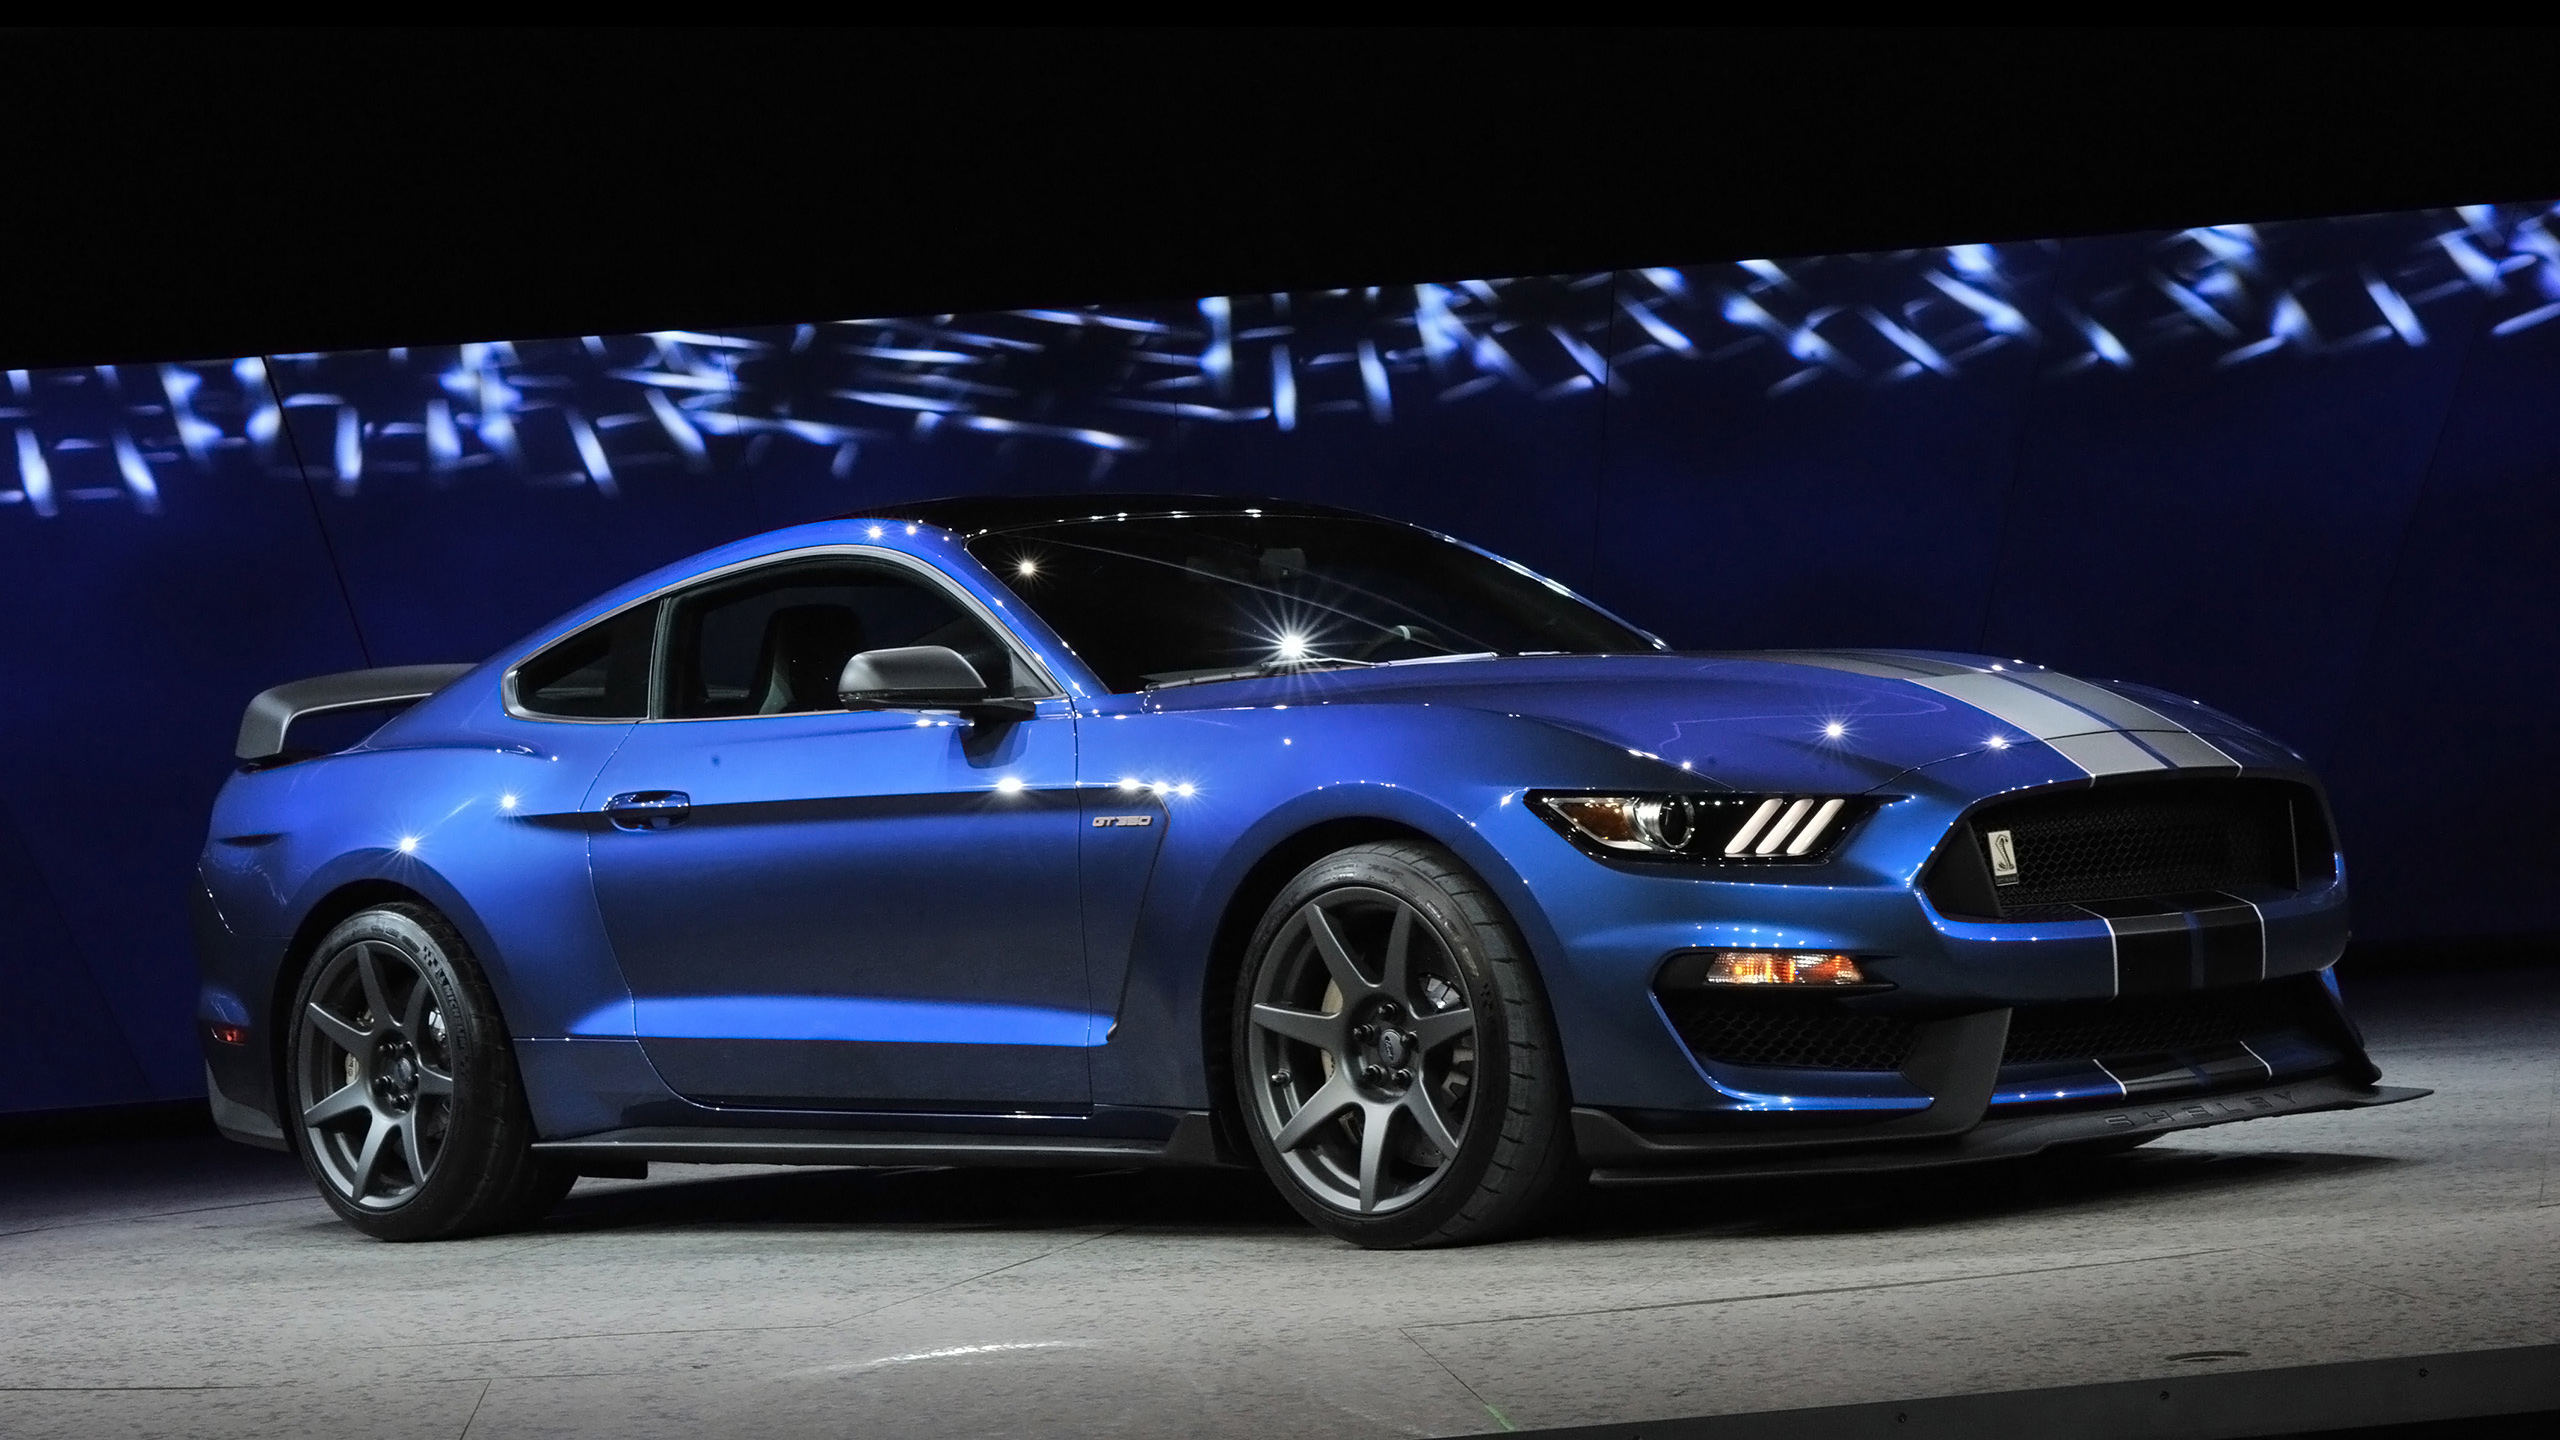 2016 Ford Shelby GT350R Mustang 2 Wallpaper HD Car Wallpapers 2560x1440